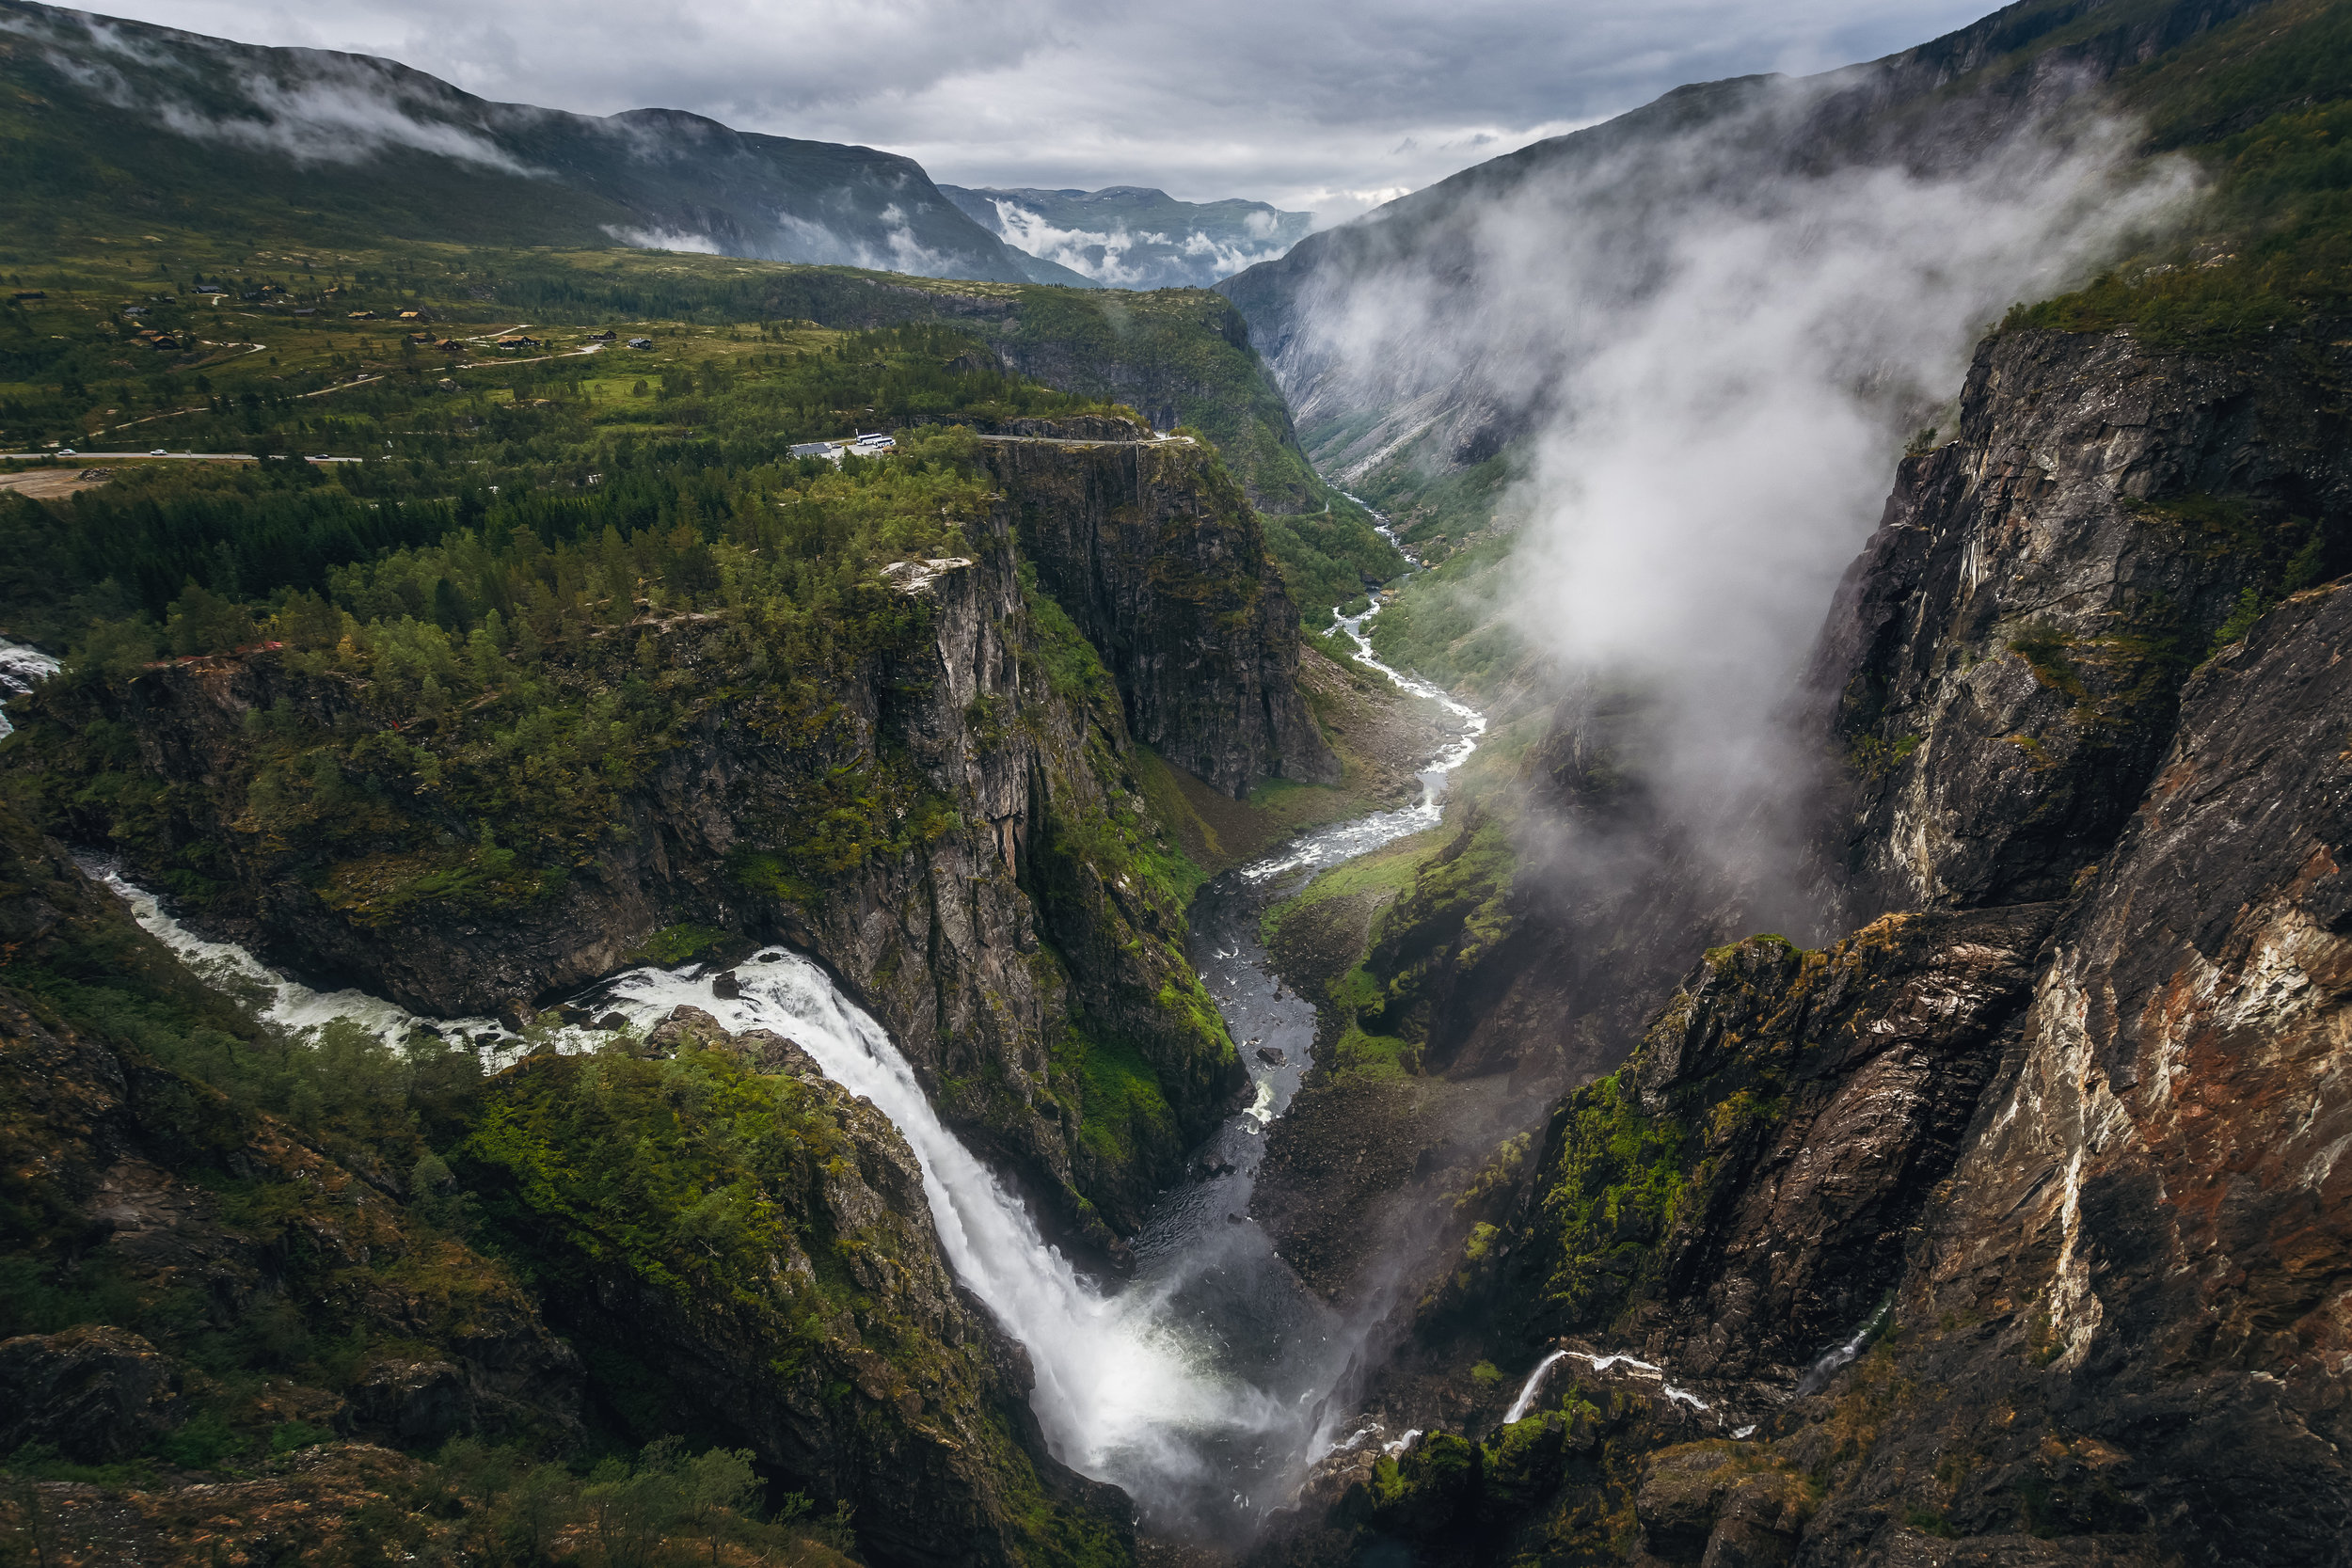 The view of the majestic Vöringsfossen